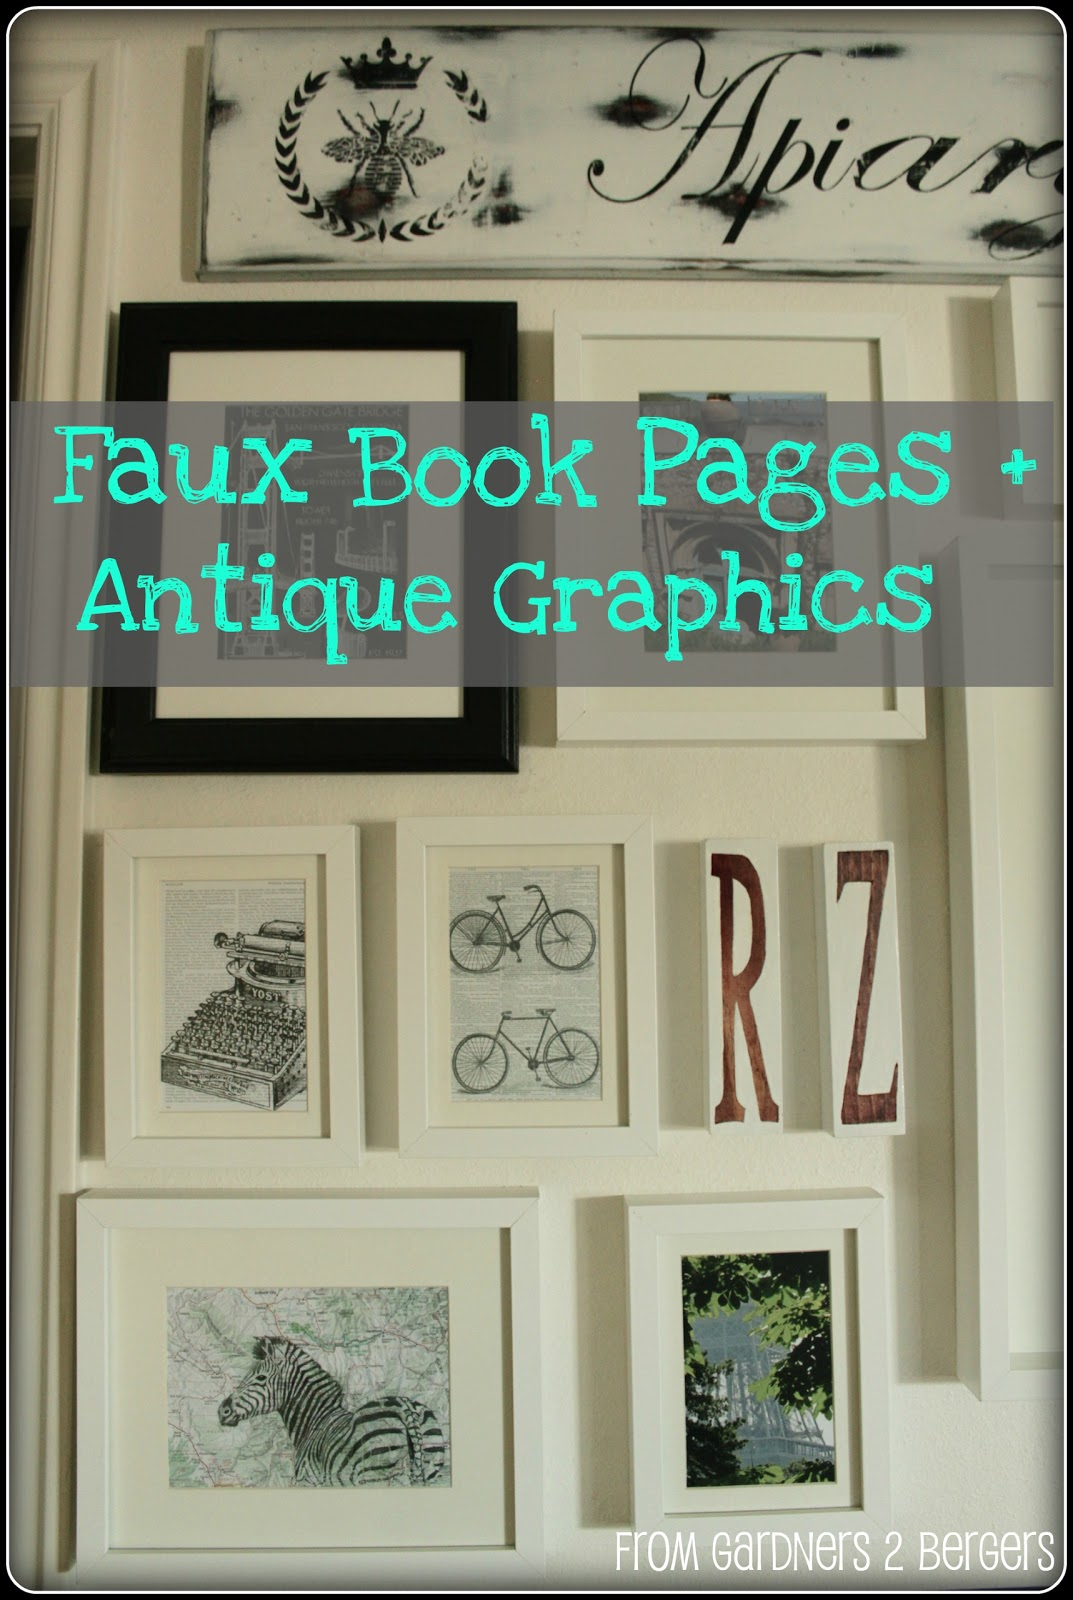 Antique-Graphics-&-SEO-Faux-Book-Pages